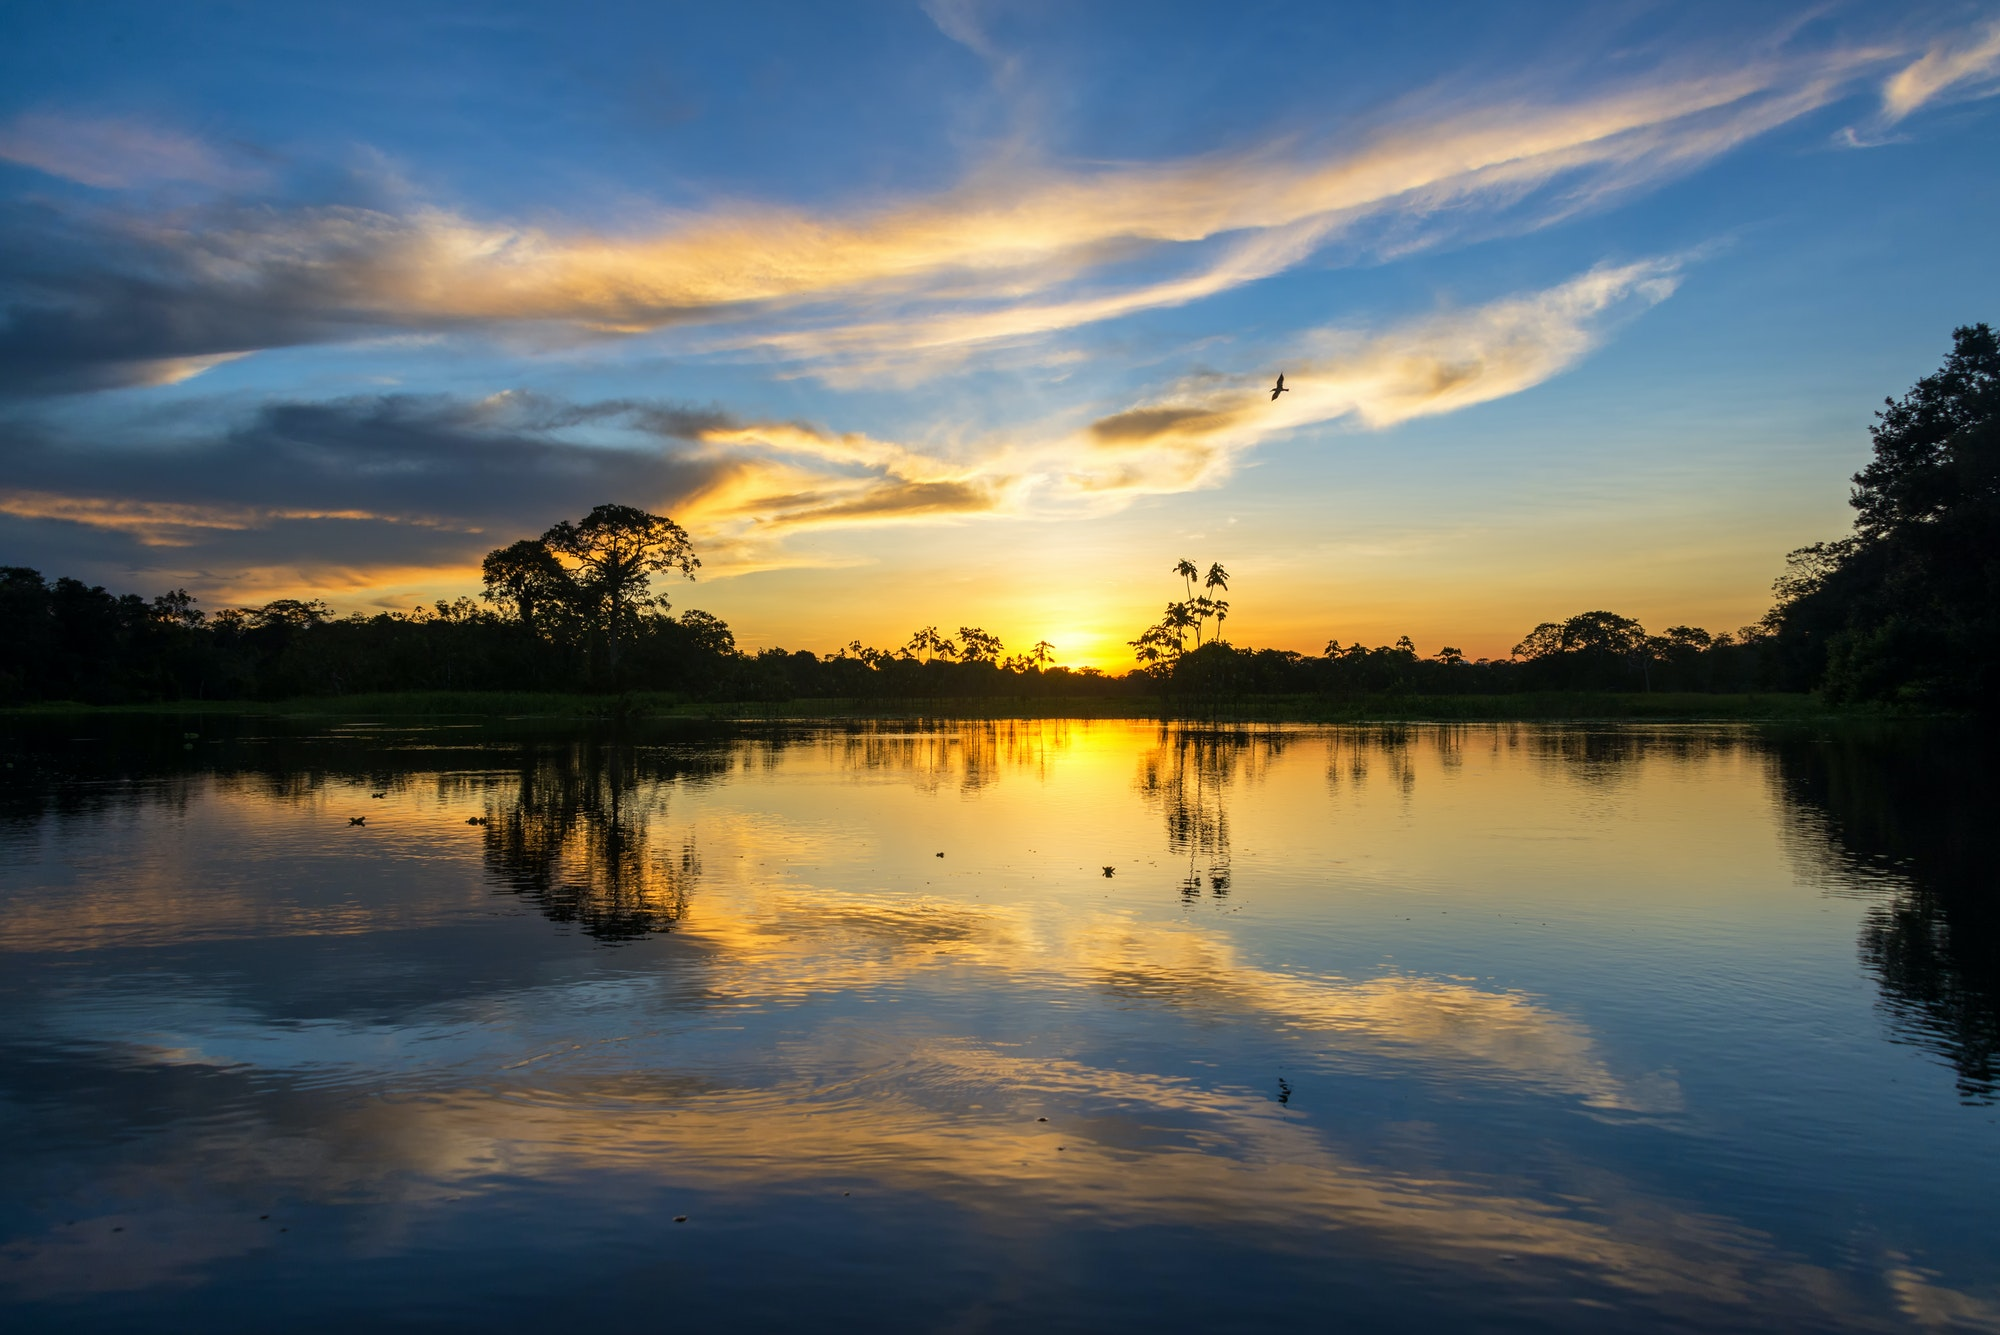 Sunset and Reflection in the Amazon